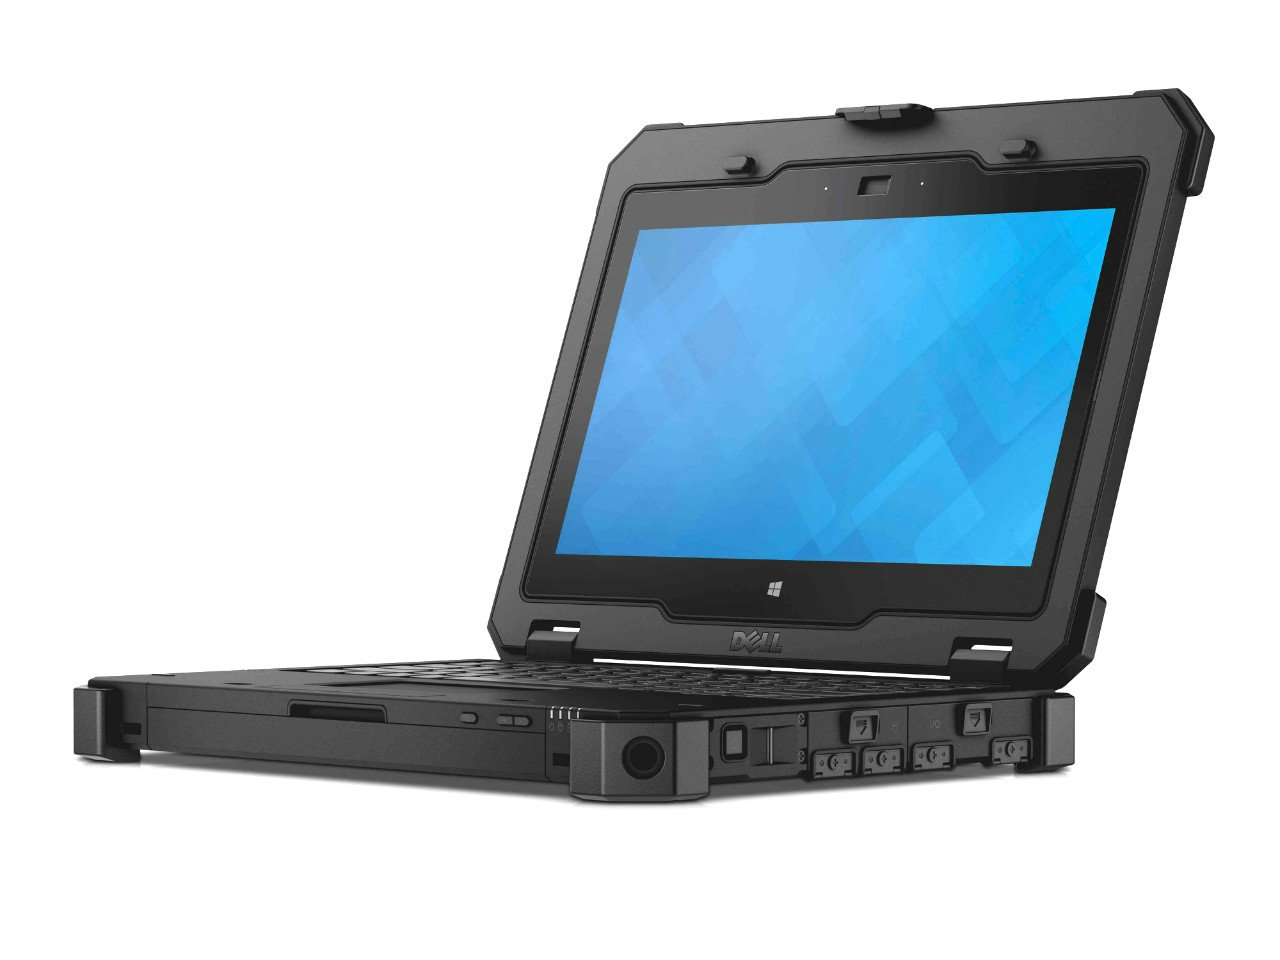 gamber doc introduces latitude tablet in rugged users rug docking station johnson an dell for vehicle extreme